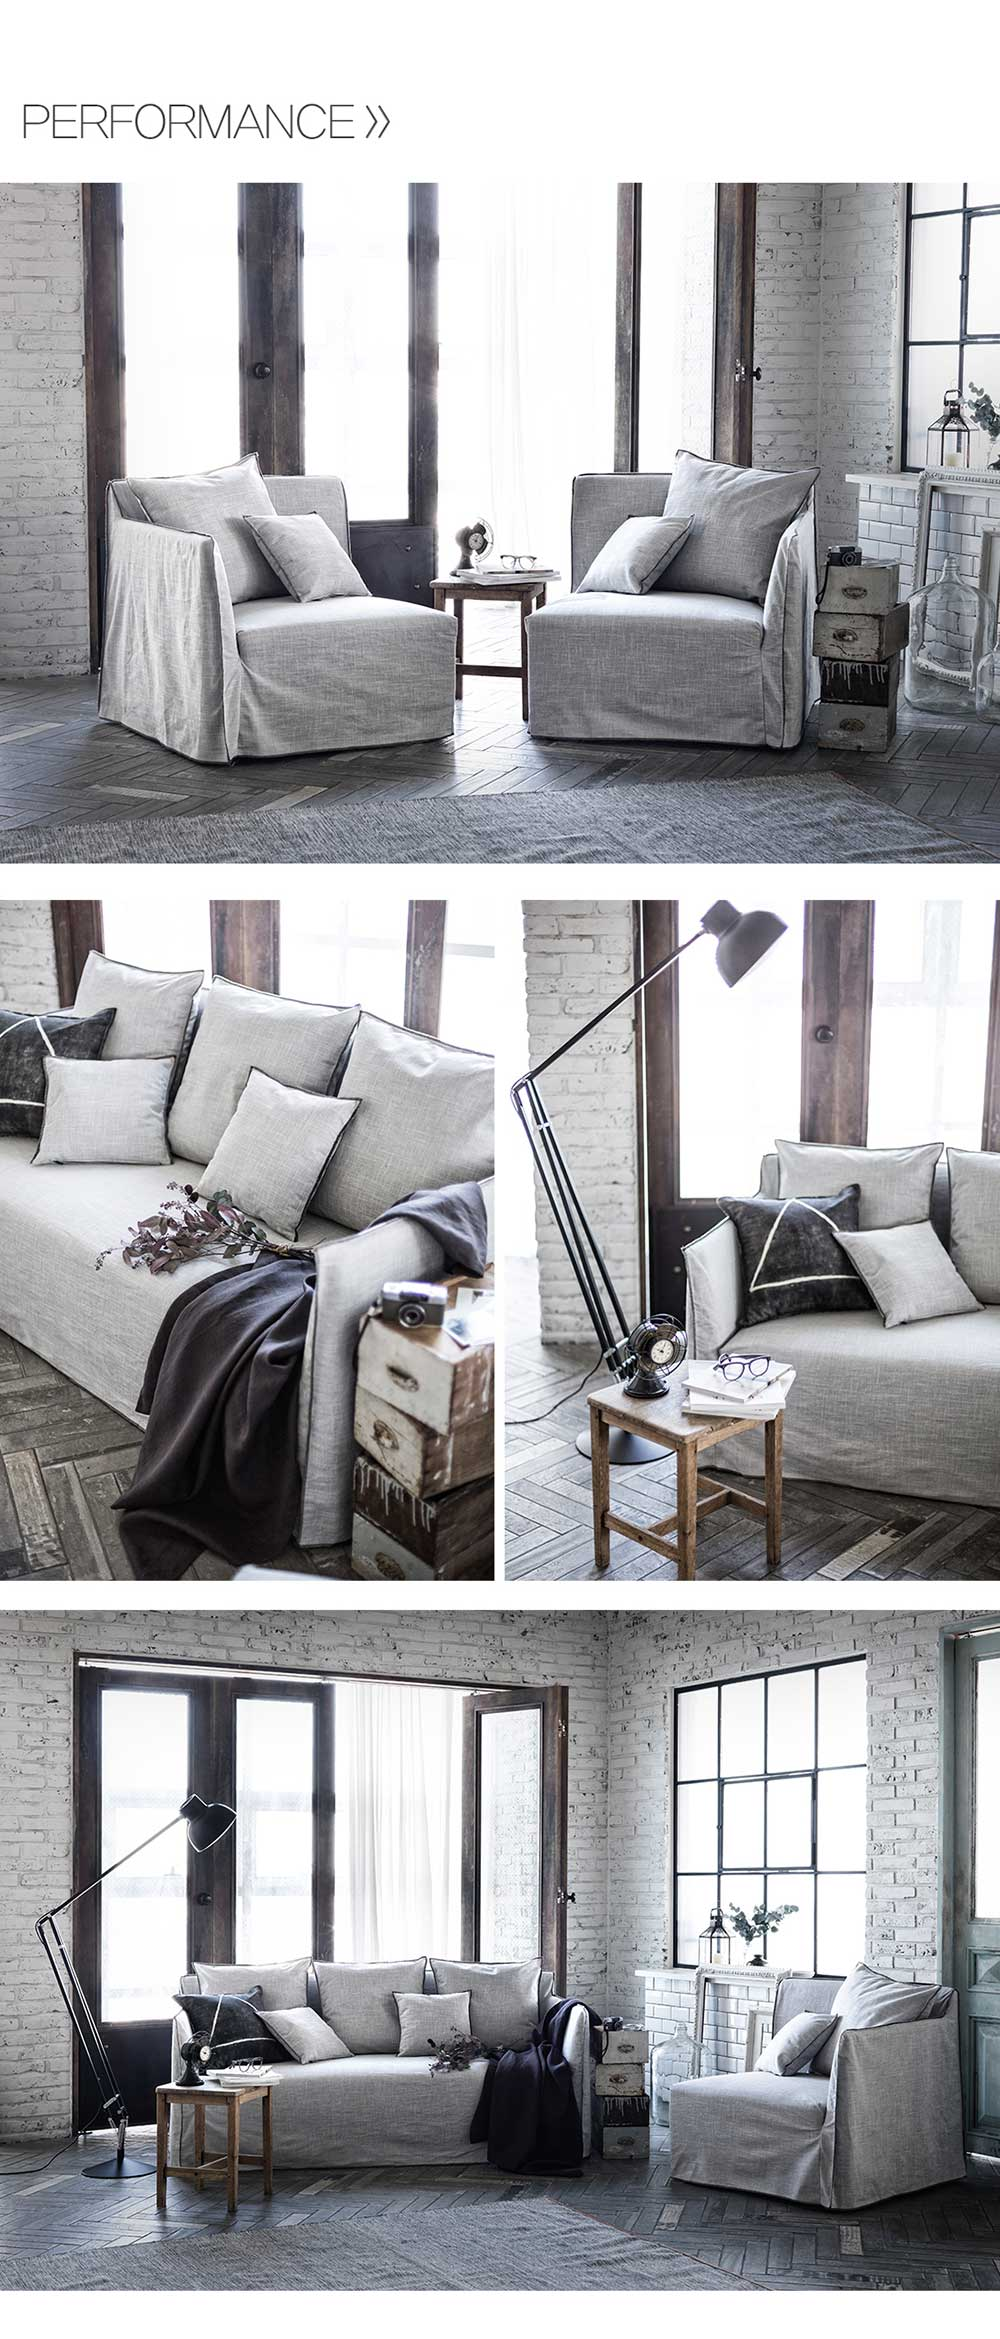 Londoner_Kinfolk_Industrial_Armchair_Sofa_(RIGHT)_(Woven Beige)_Online_Furniture_Singapore_Performance_by_born_in_colour